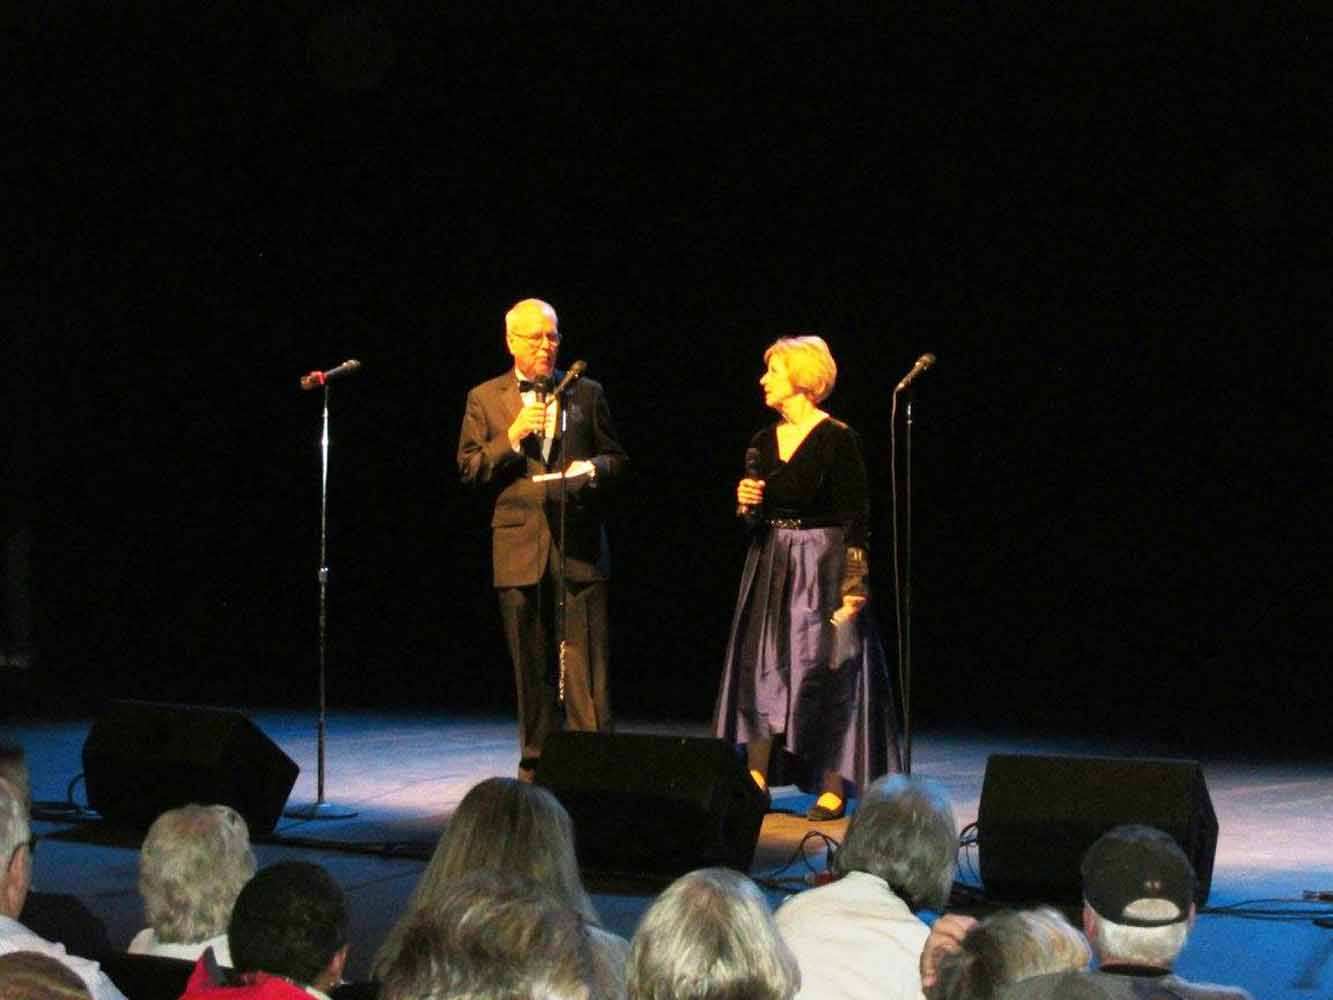 Pam & Charlie, emcees.  Photo by JB.